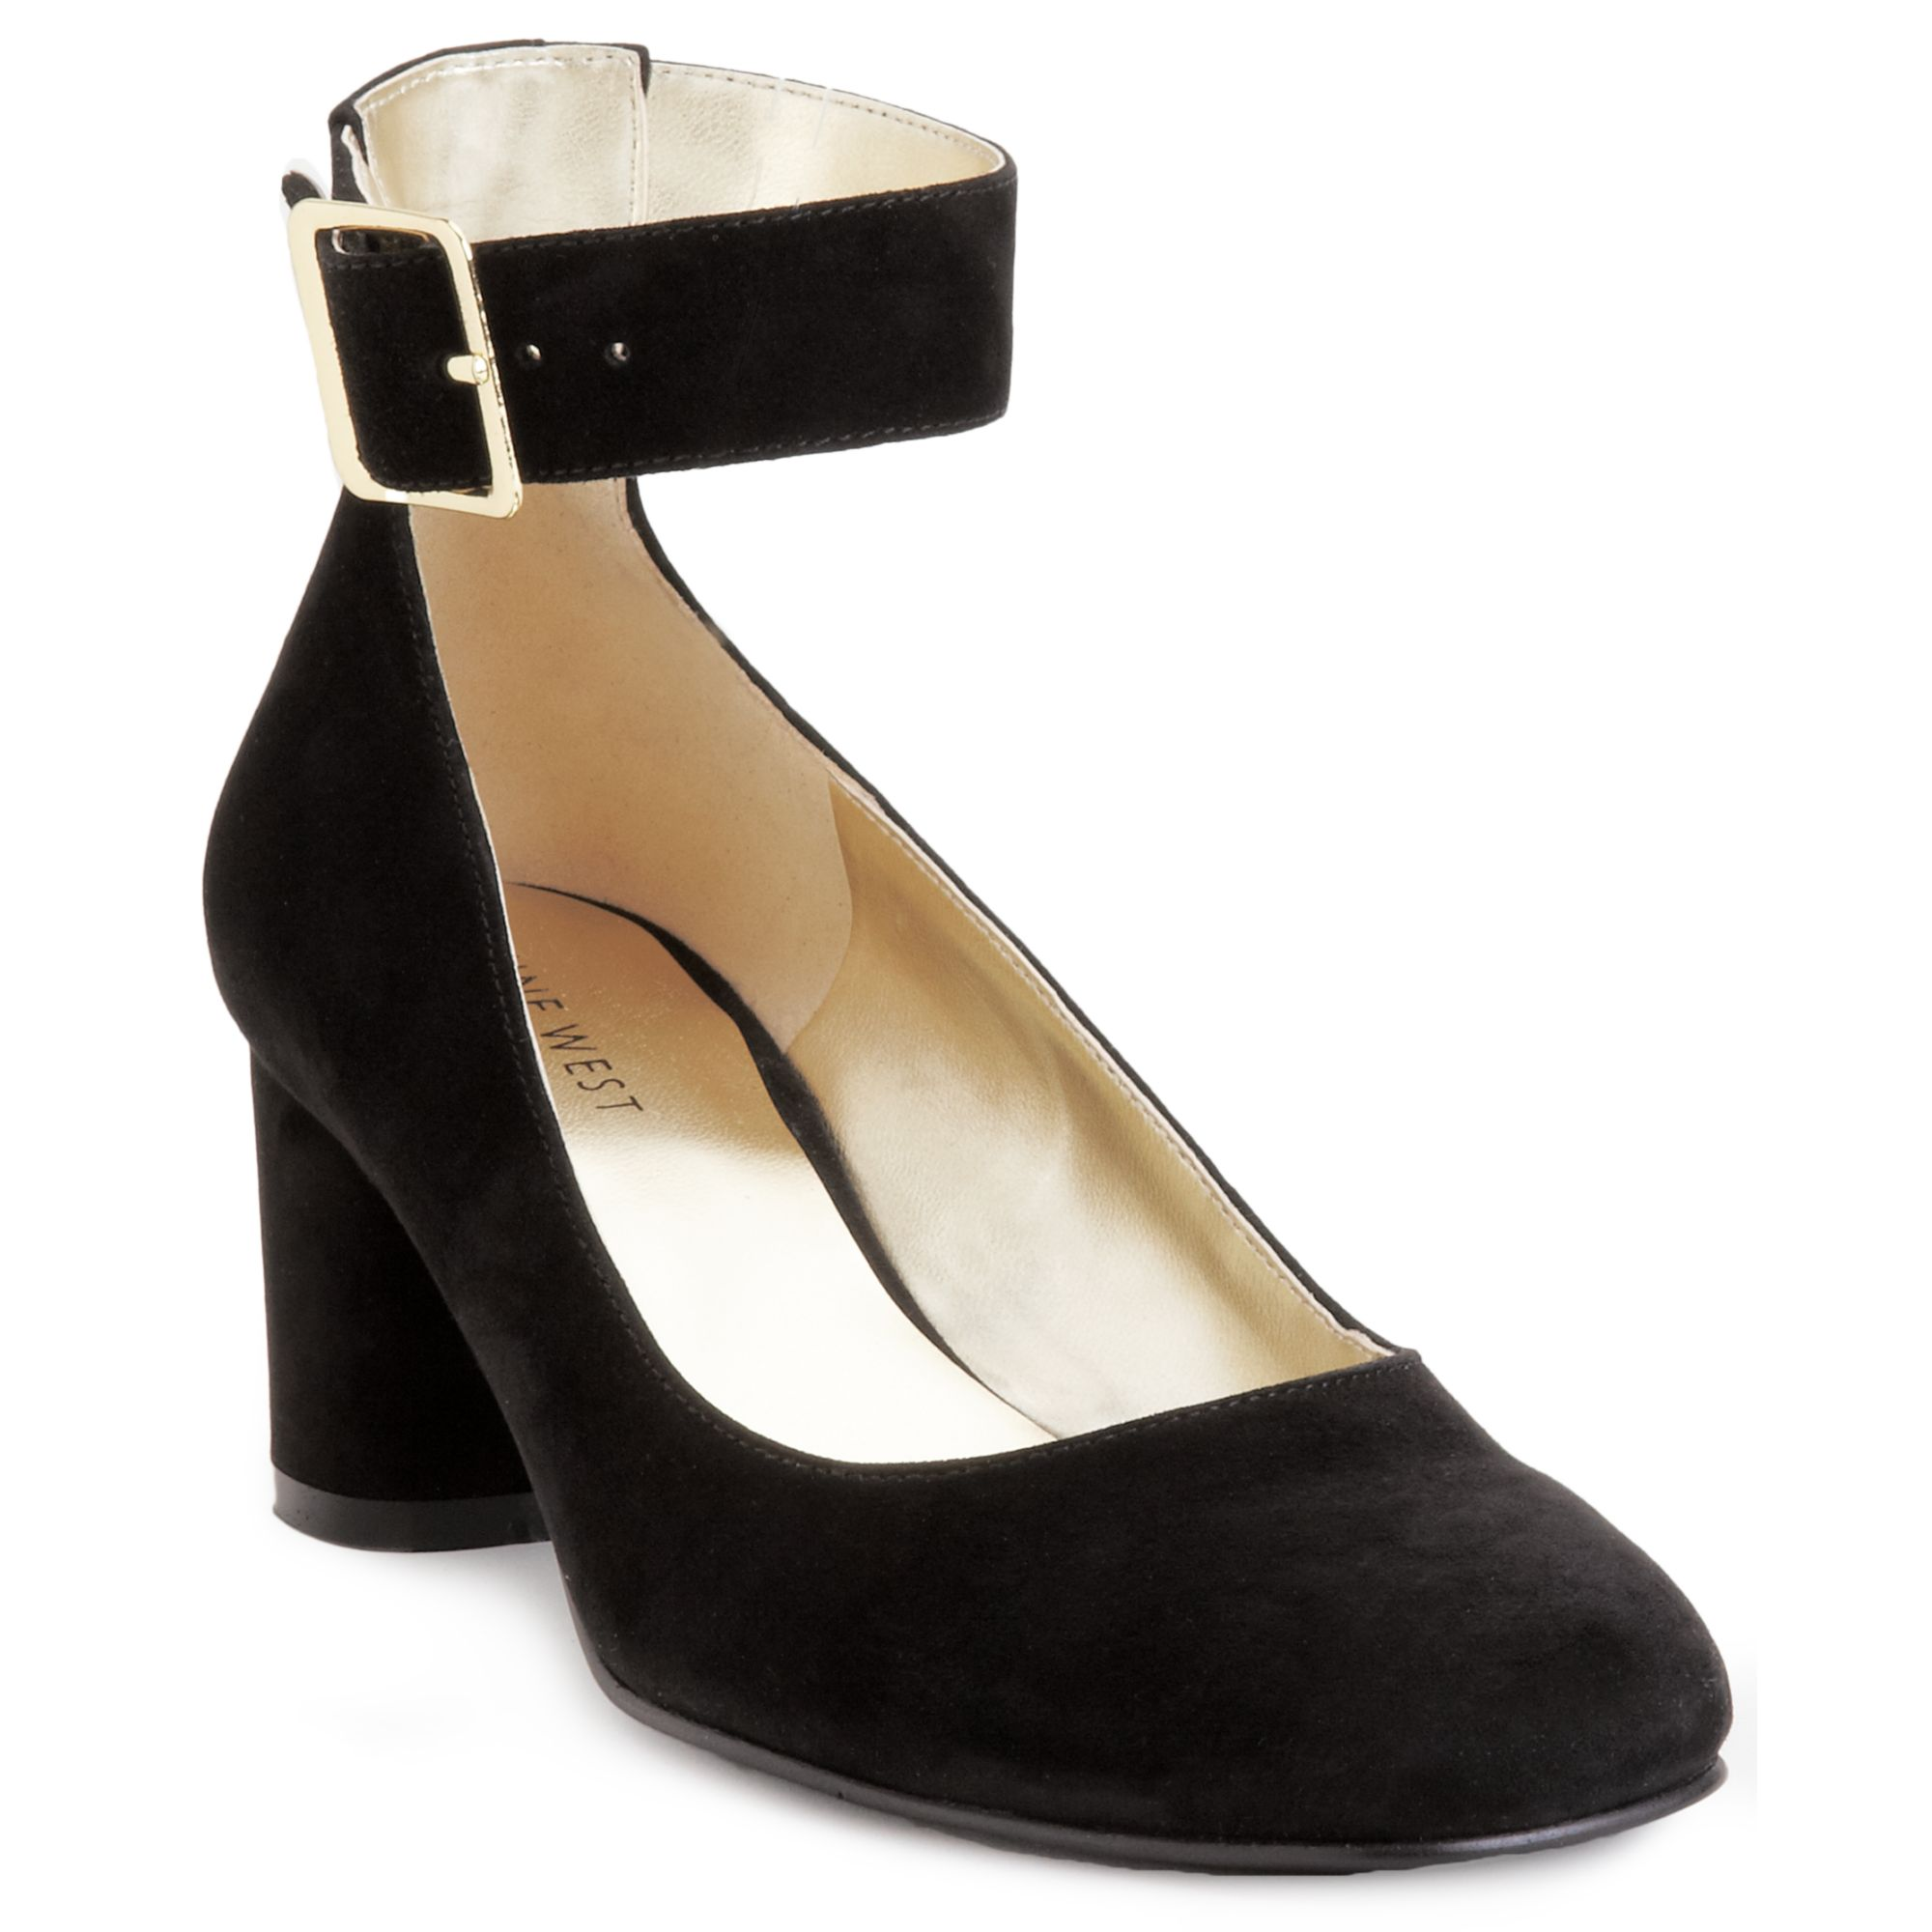 Nine west Servina Ankle Strap Mid Heel Pumps in Black | Lyst